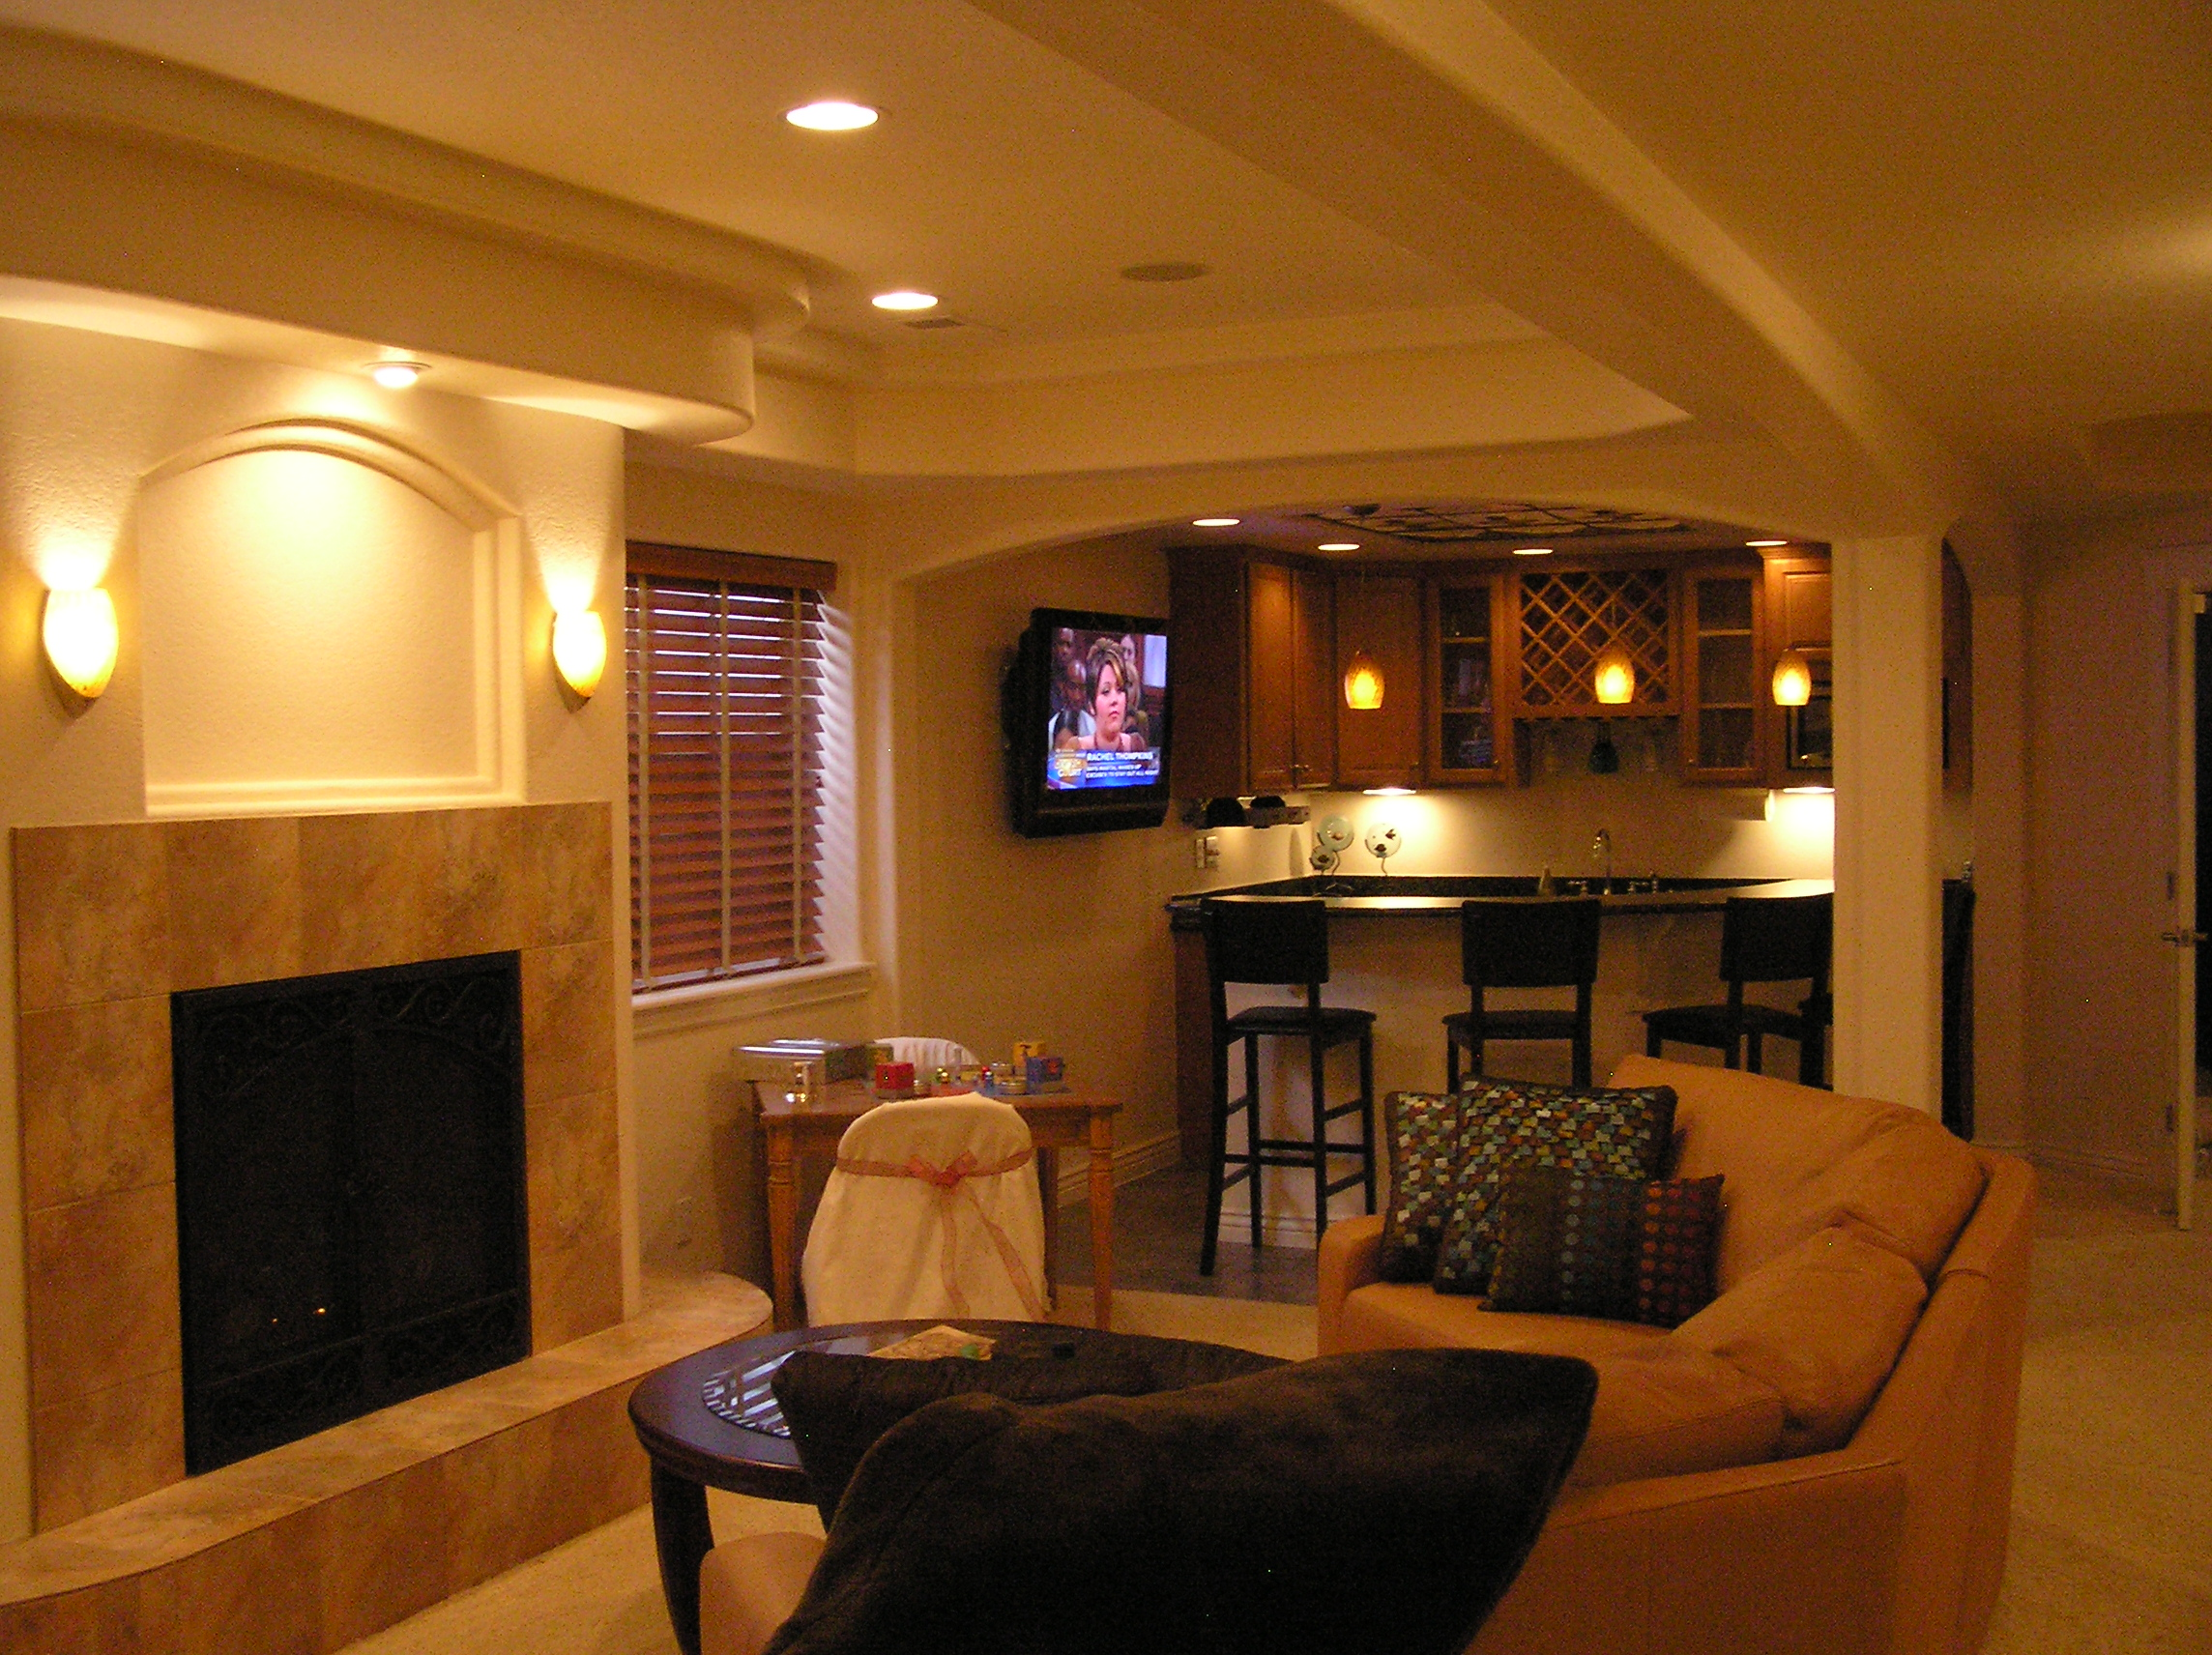 Basement Remodeling Designs Ideas Property basement finish design photos